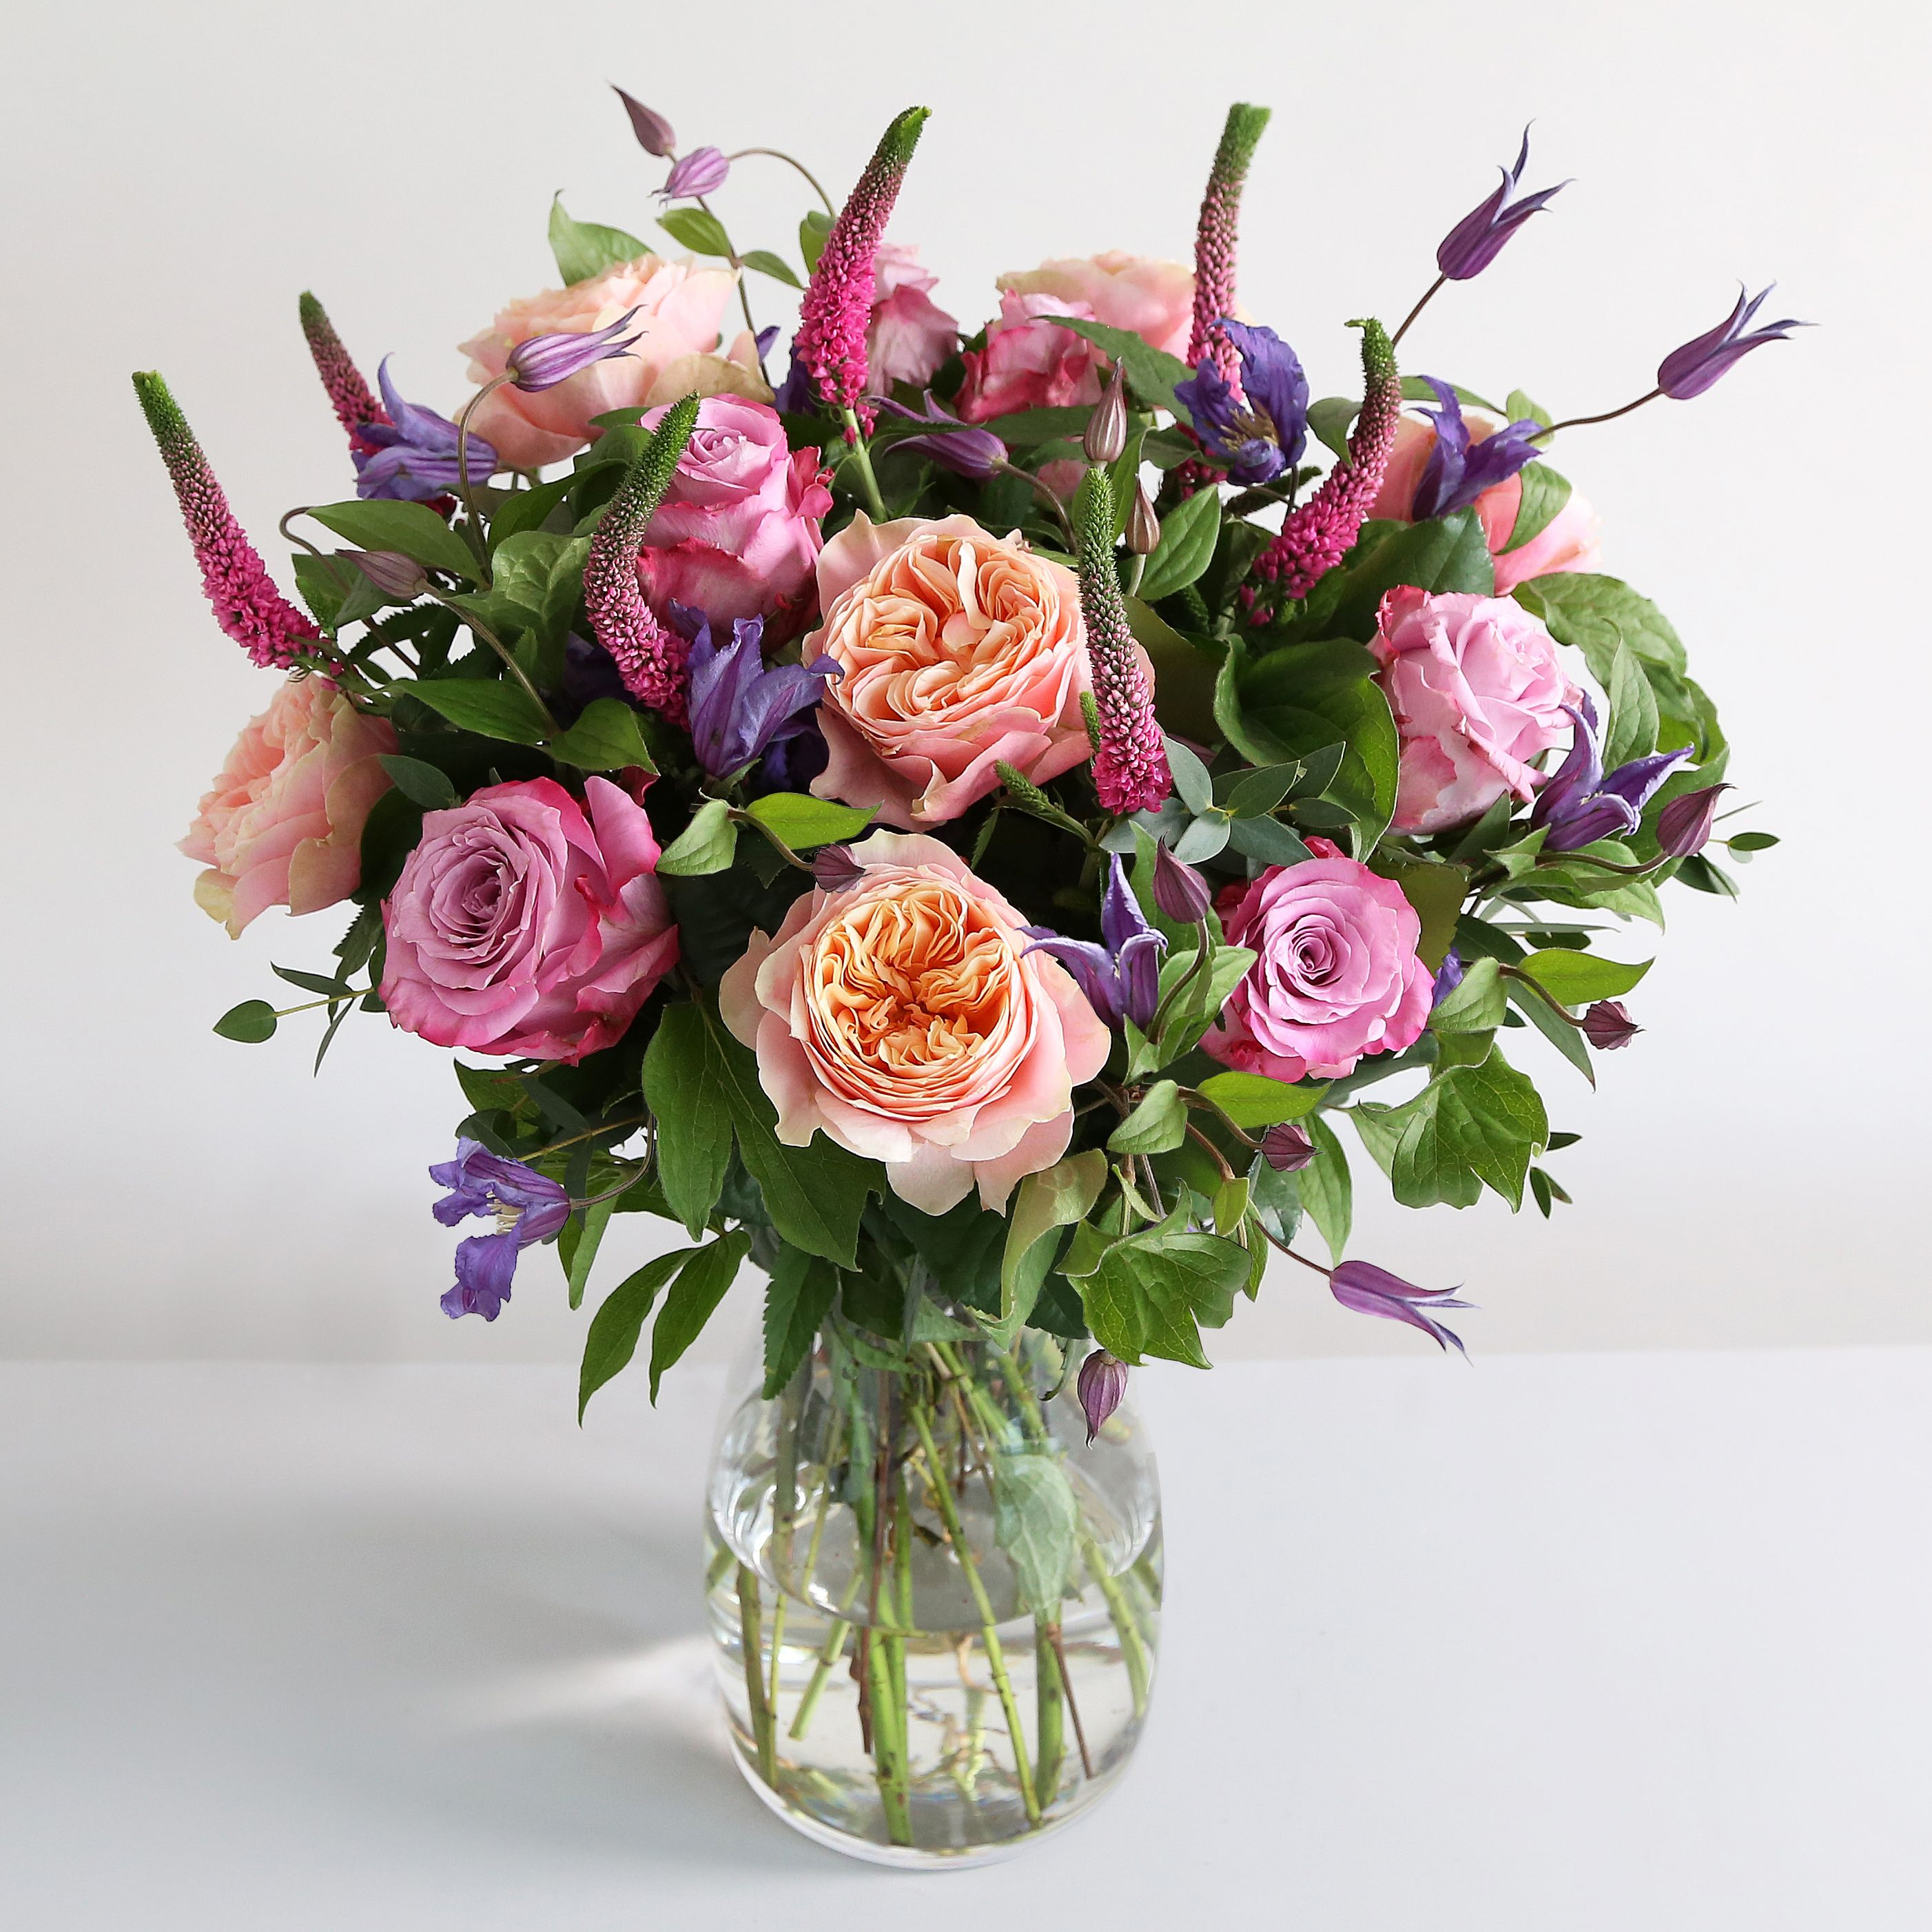 Summer romance bouquet 6 vuvuzaela 7 veronica pink 4 parvi call now on 0800 0350 flower delivery london uk from leading online flower shop arena flowers izmirmasajfo Image collections